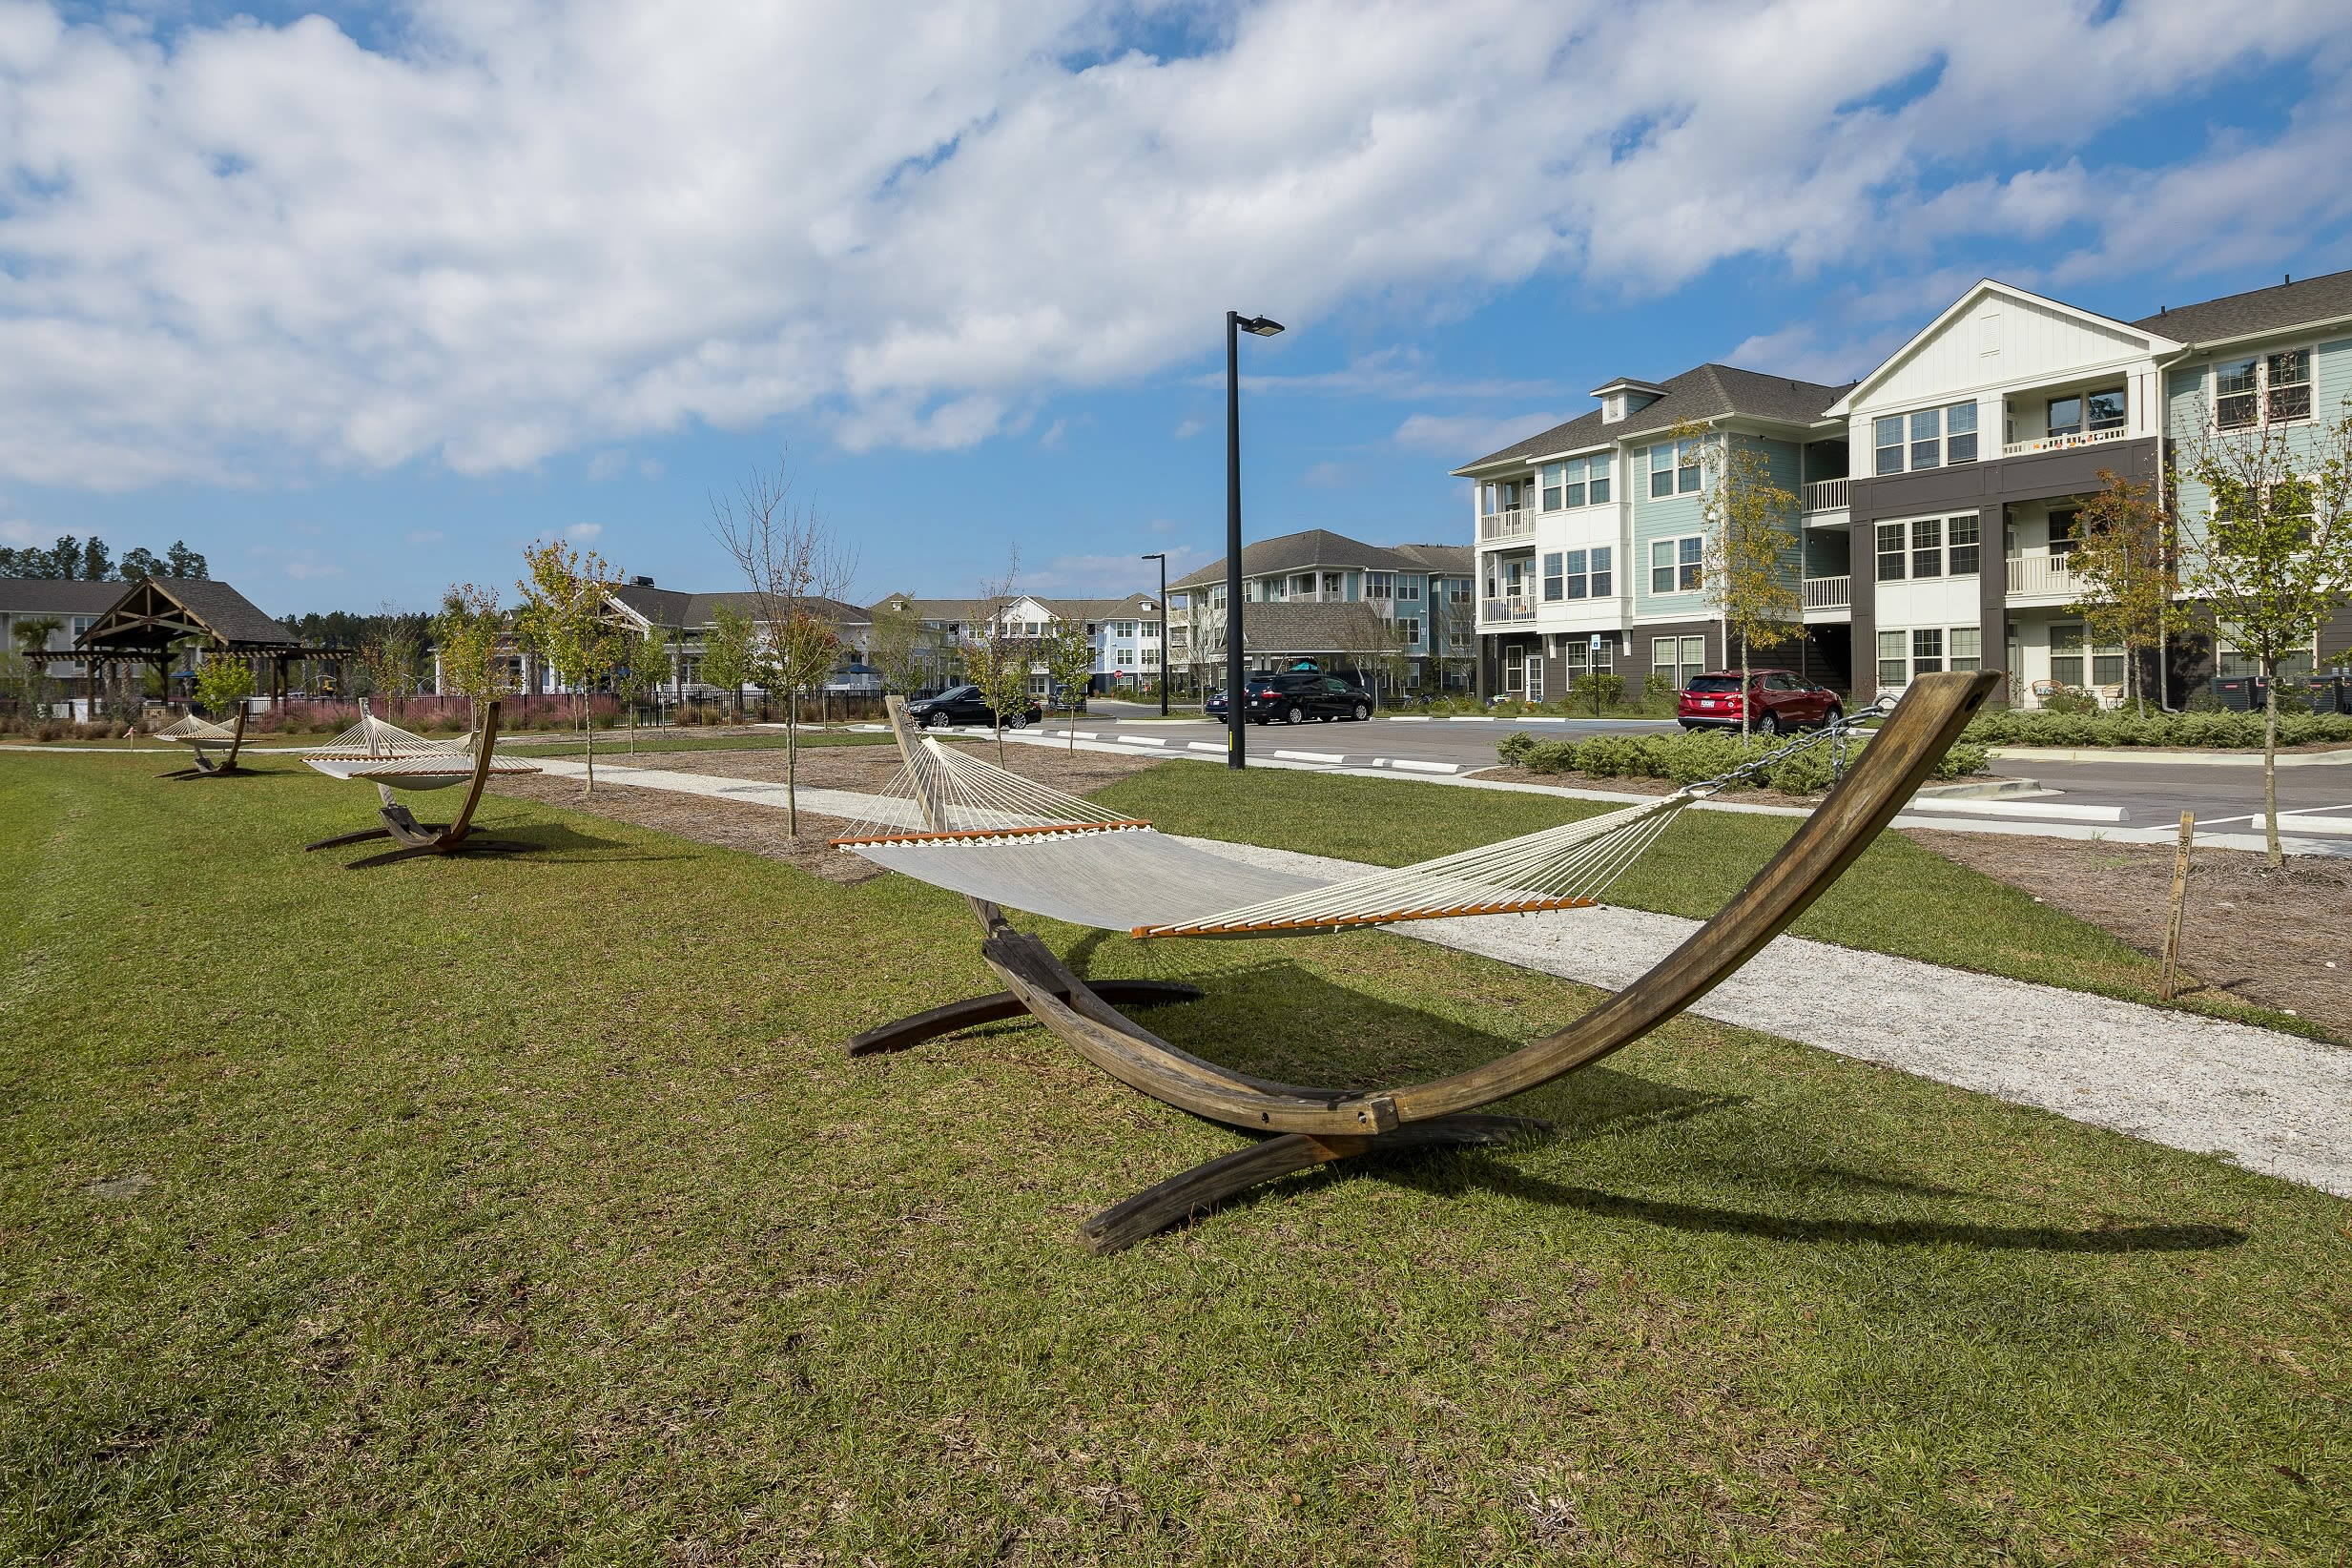 Outdoor hammocks in courtyard at Elevate at Brighton Park in Summerville, South Carolina